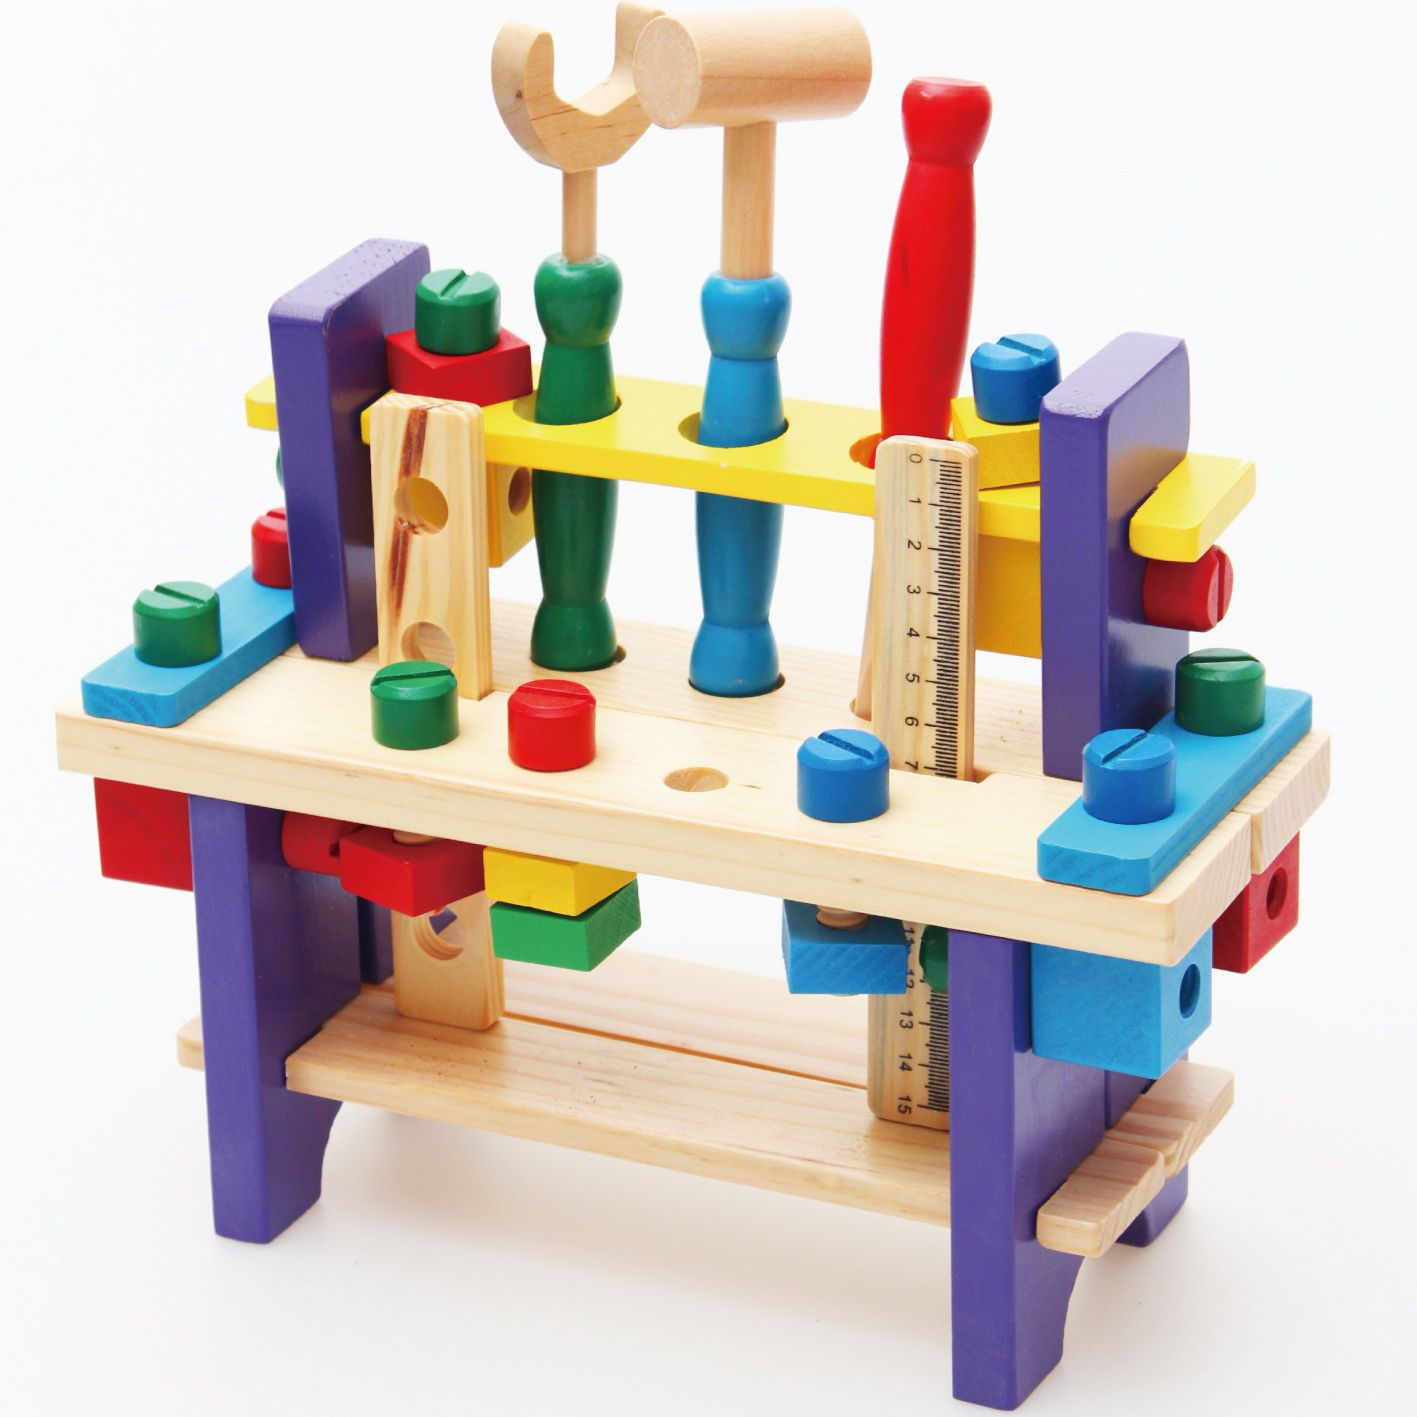 Permalink to Amazing Wood toys for toddlers Pictures